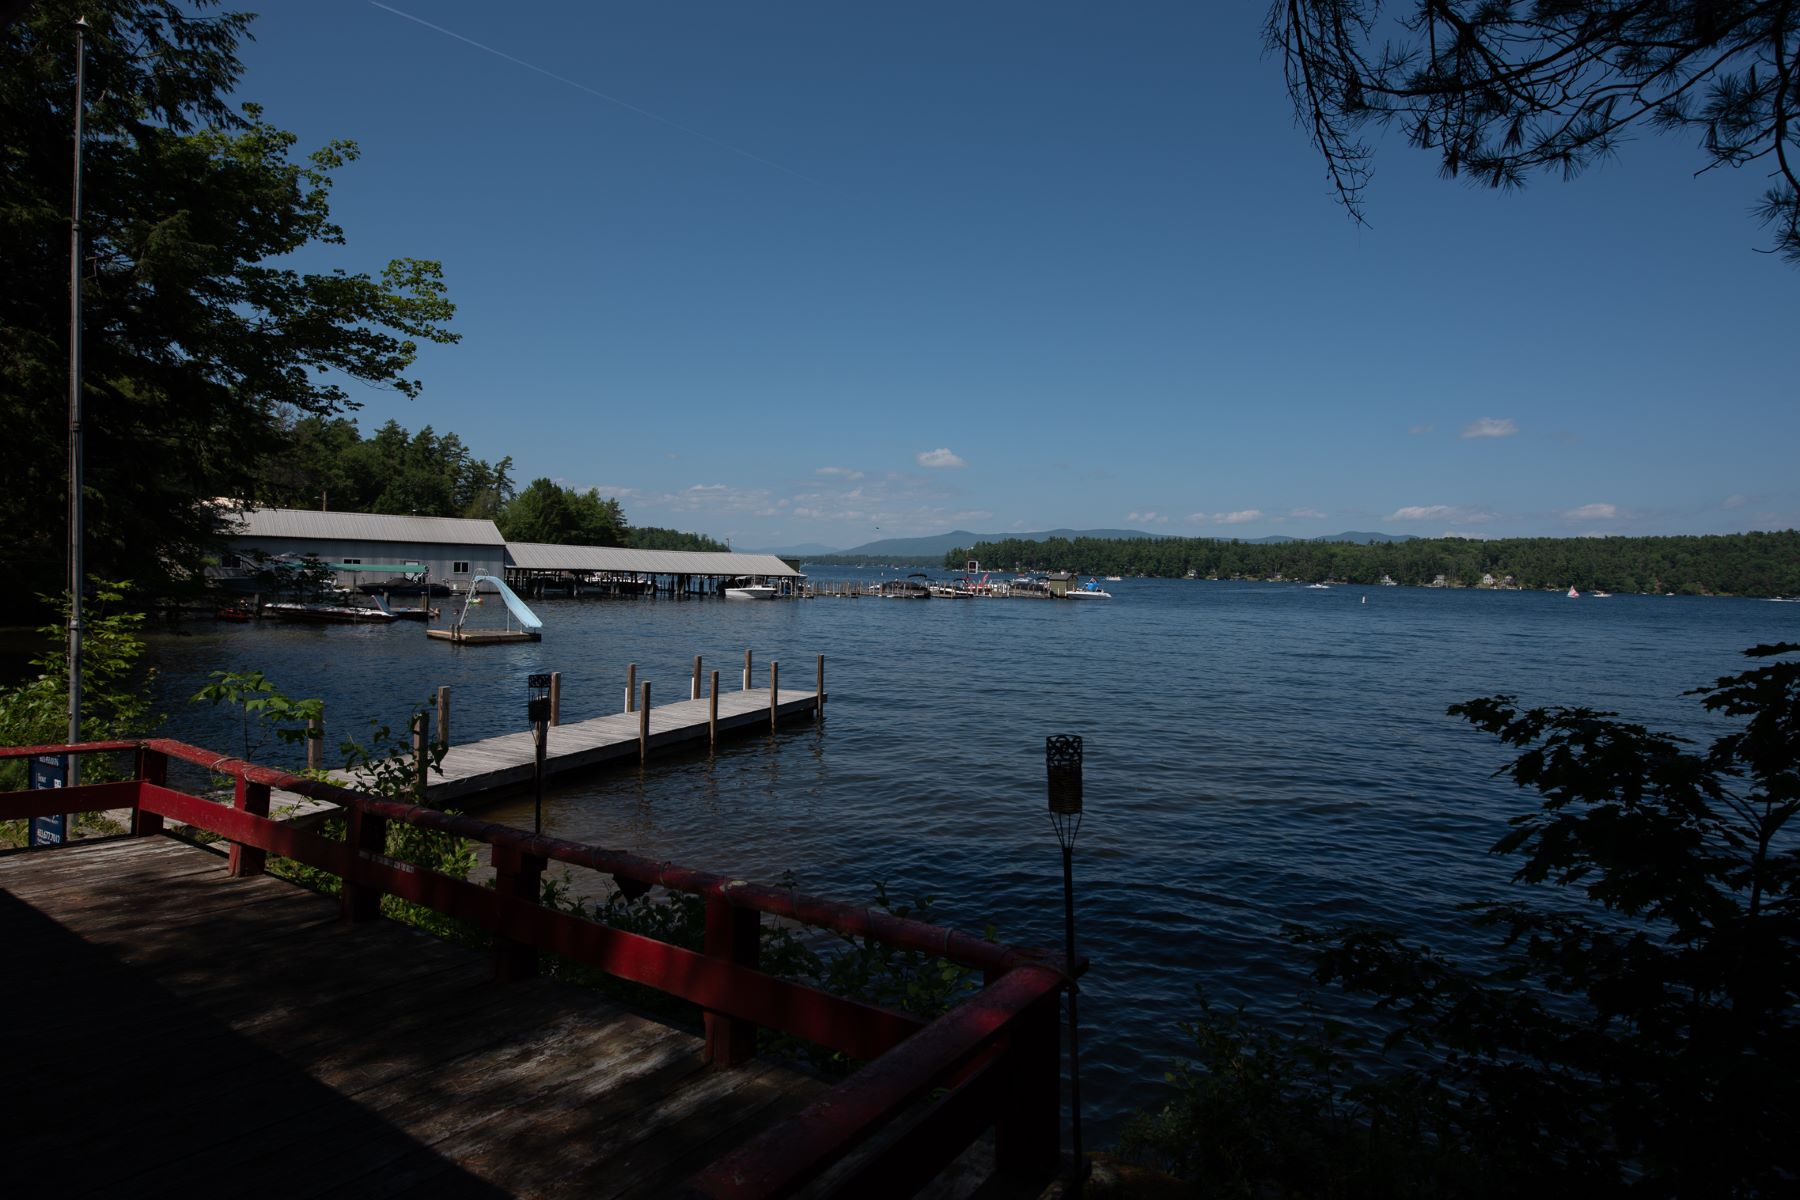 Single Family Homes for Sale at Winnipesaukee Meredith Waterfront 5 & 6 Lovejoy Ln Meredith, New Hampshire 03253 United States